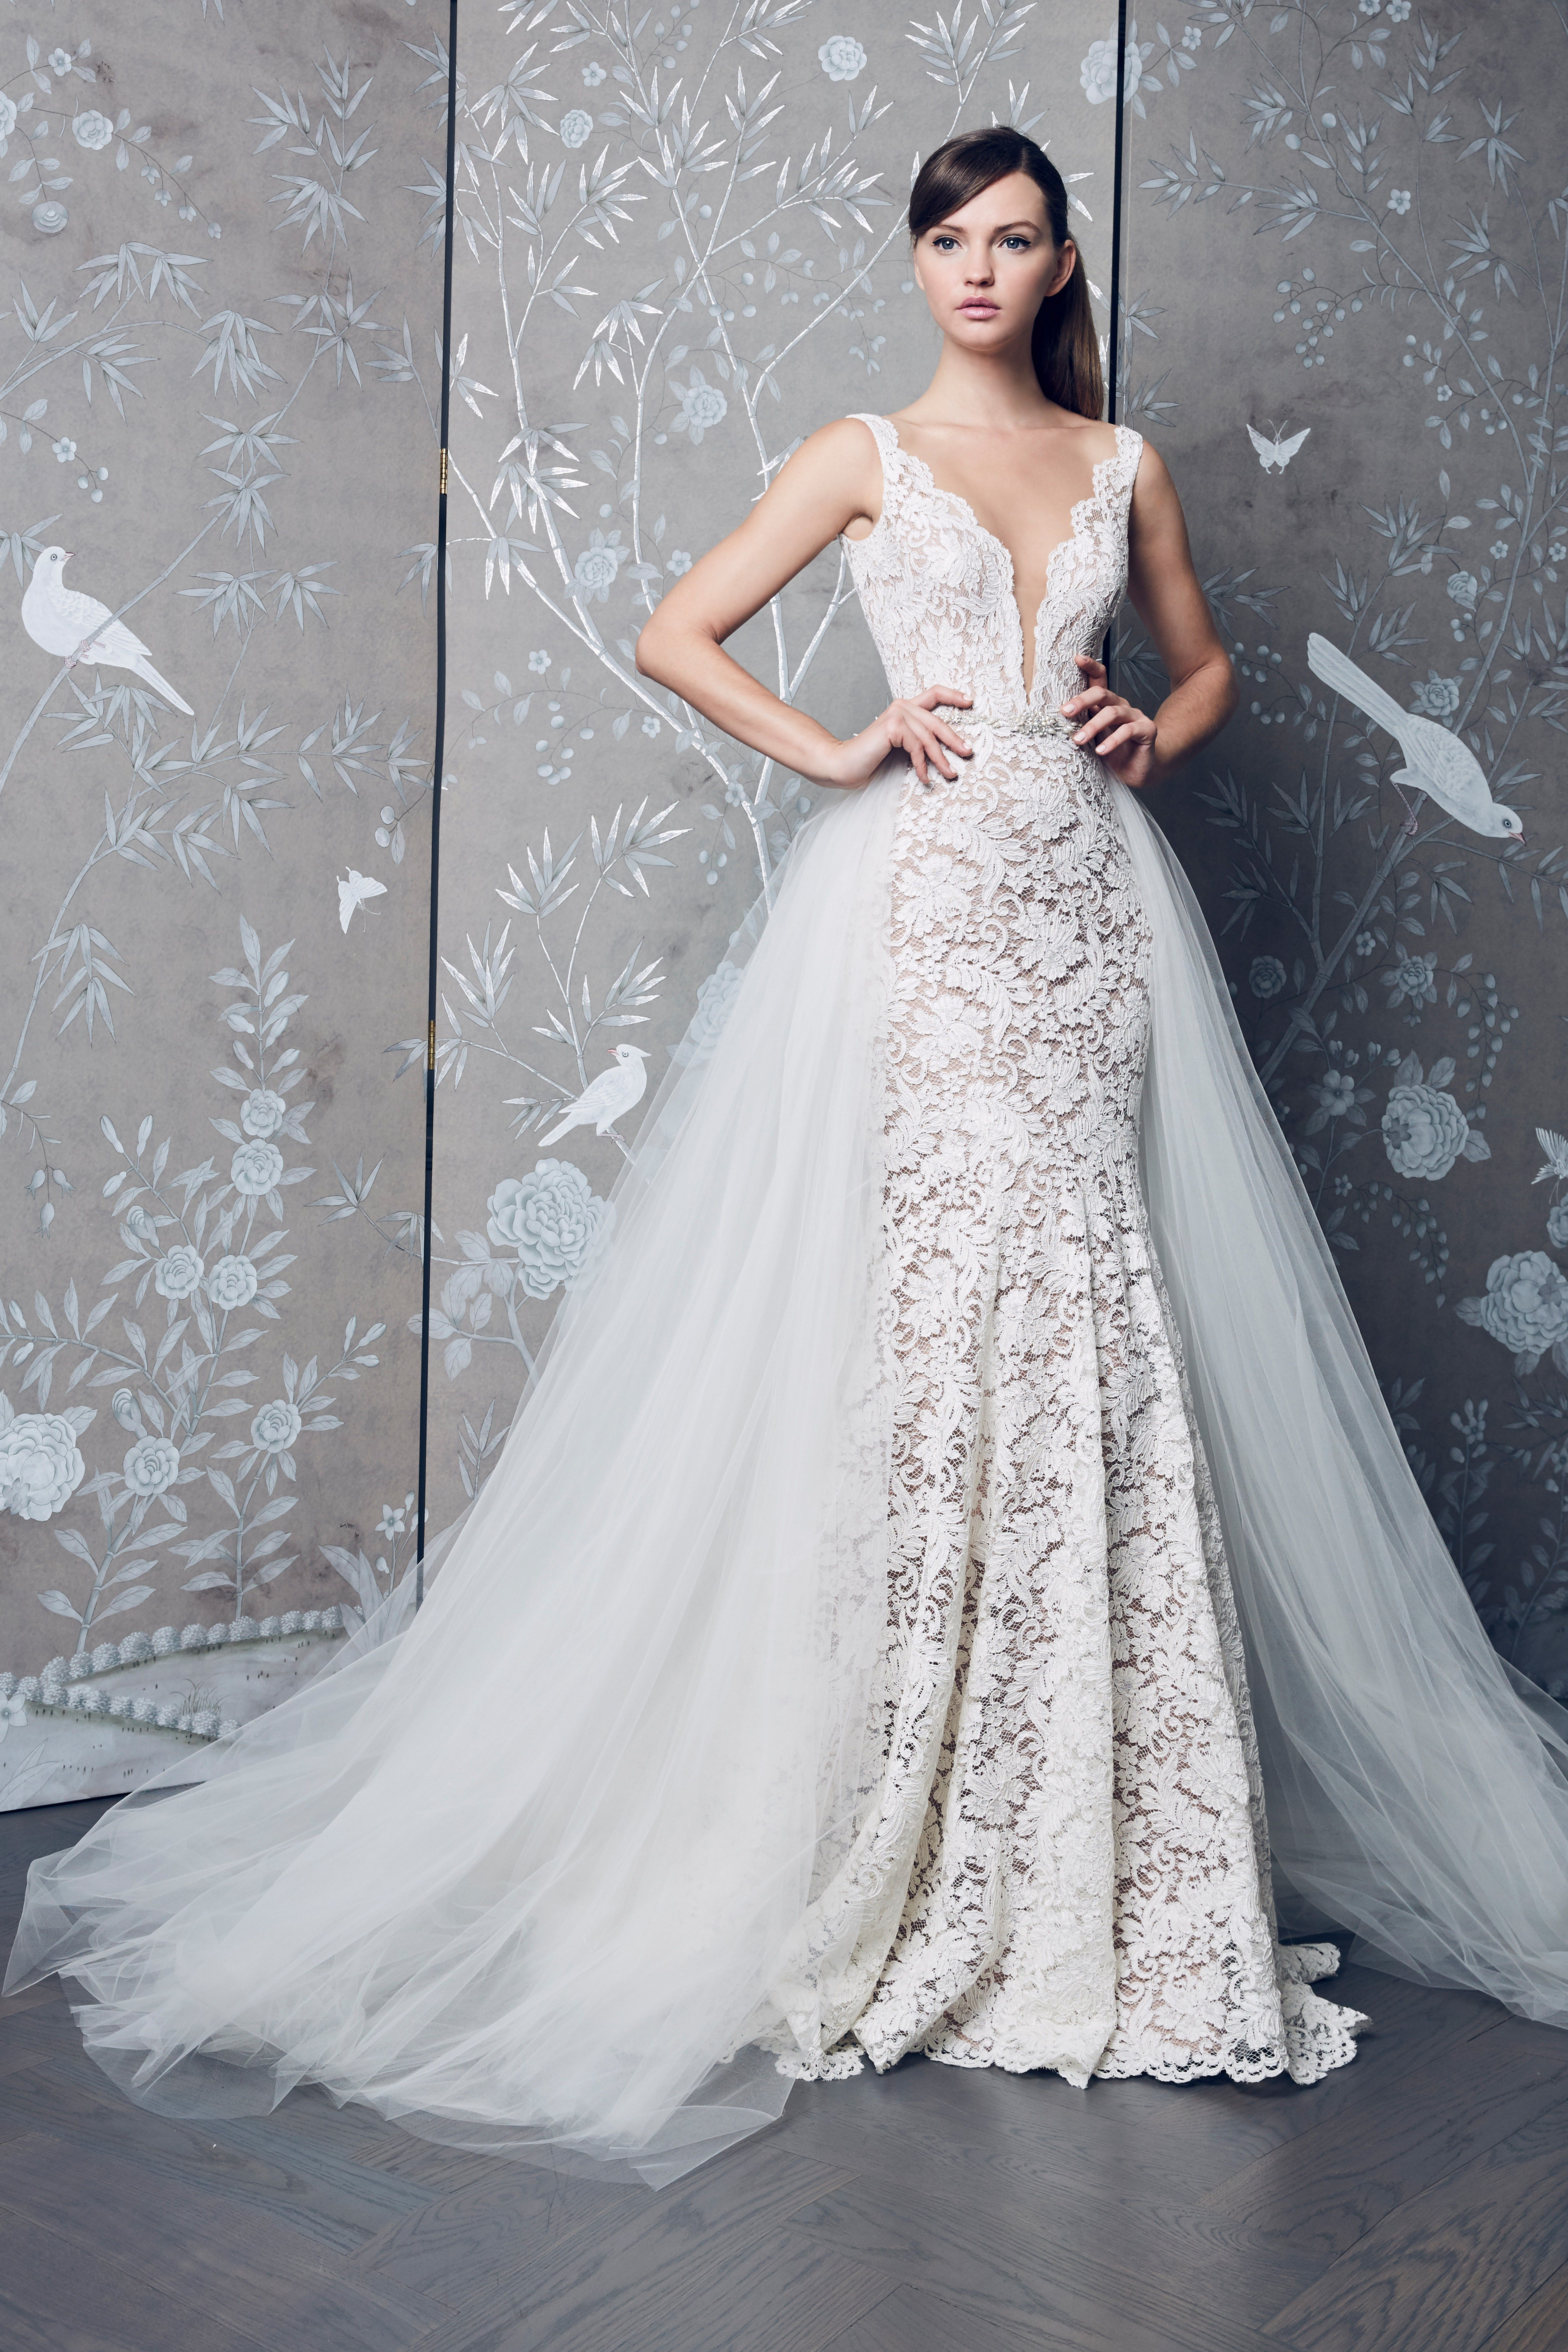 Legends by Romona Keveza Bridal & Wedding Dress Collection Fall 2018 ...